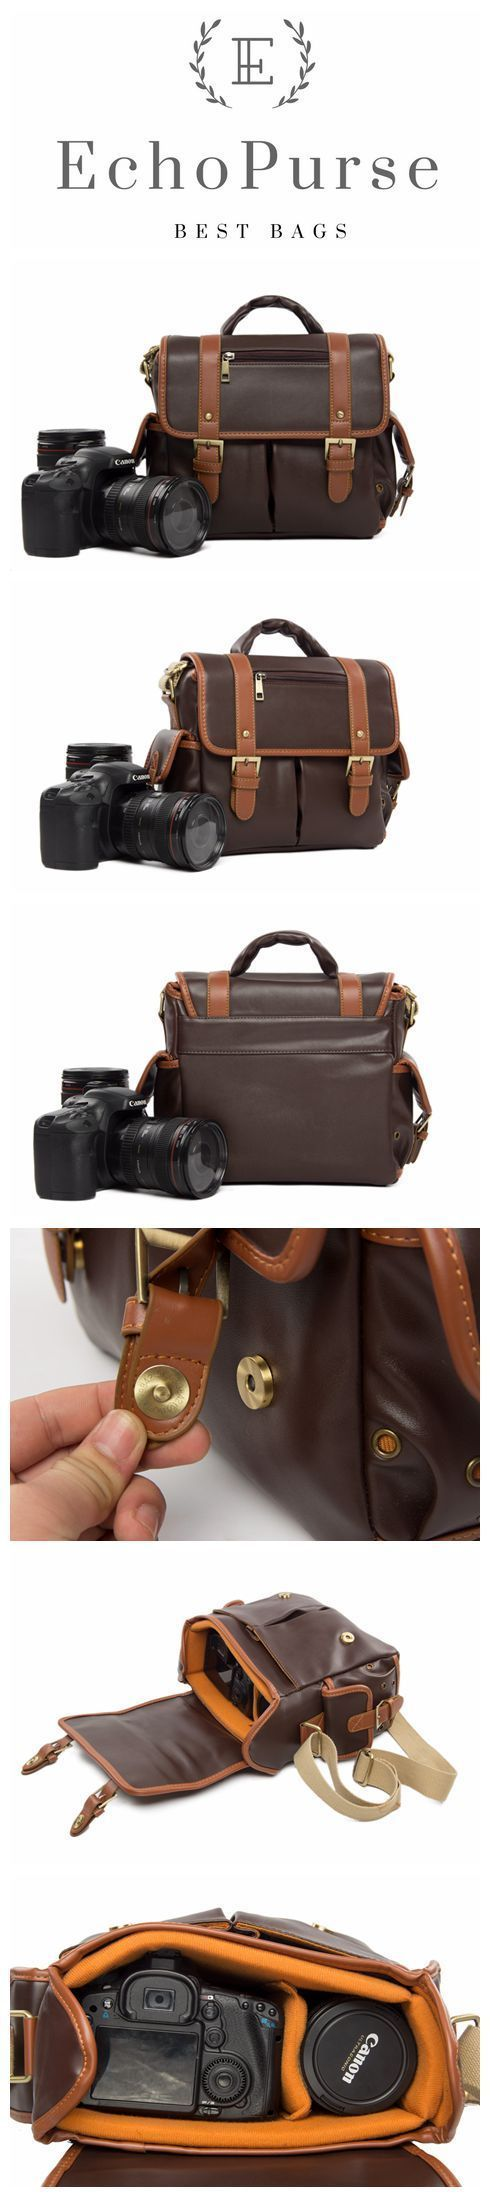 Handmade Leather DSLR Camera Pouch, Coffee SLR Camera Case 919